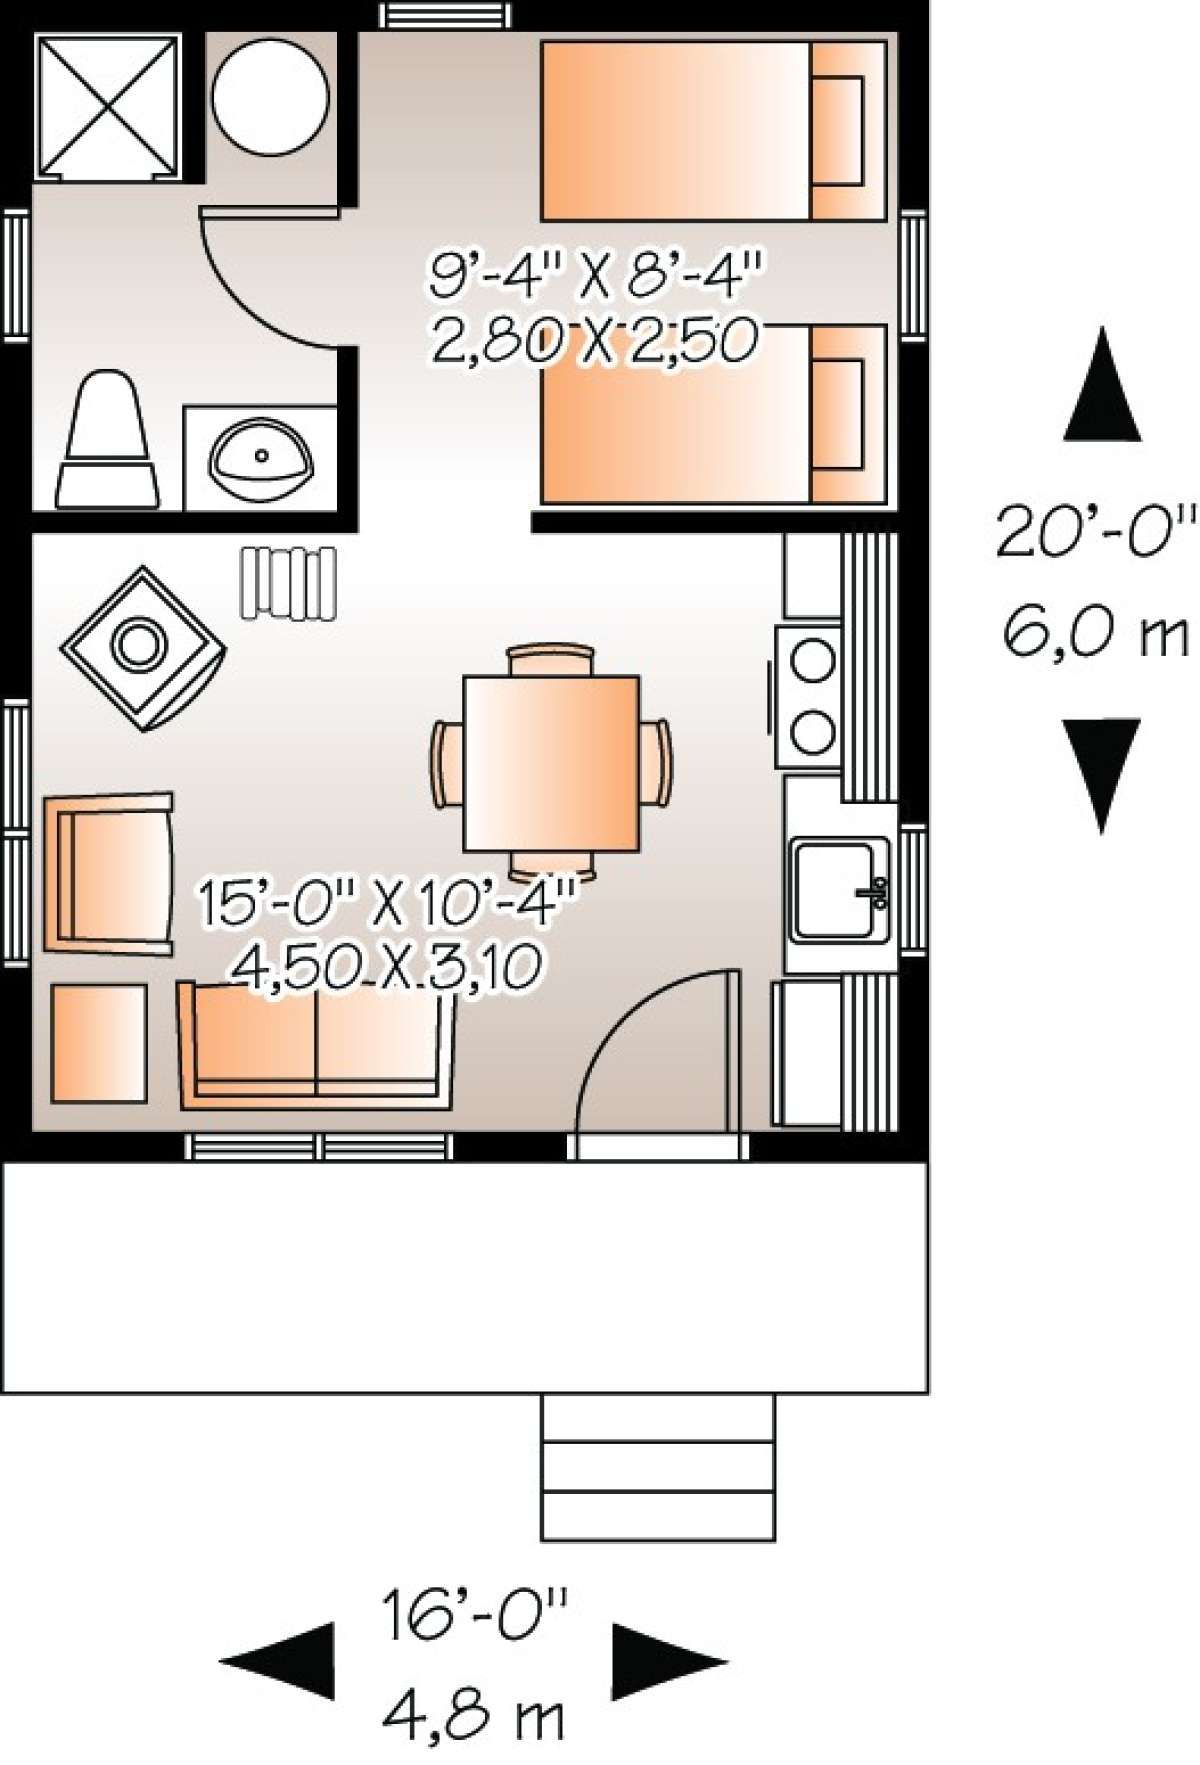 House Plan 034 00174 Small Plan 320 Square Feet 1 Bedroom 1 Bathroom In 2021 Cabin House Plans Tiny House Floor Plans House Plans